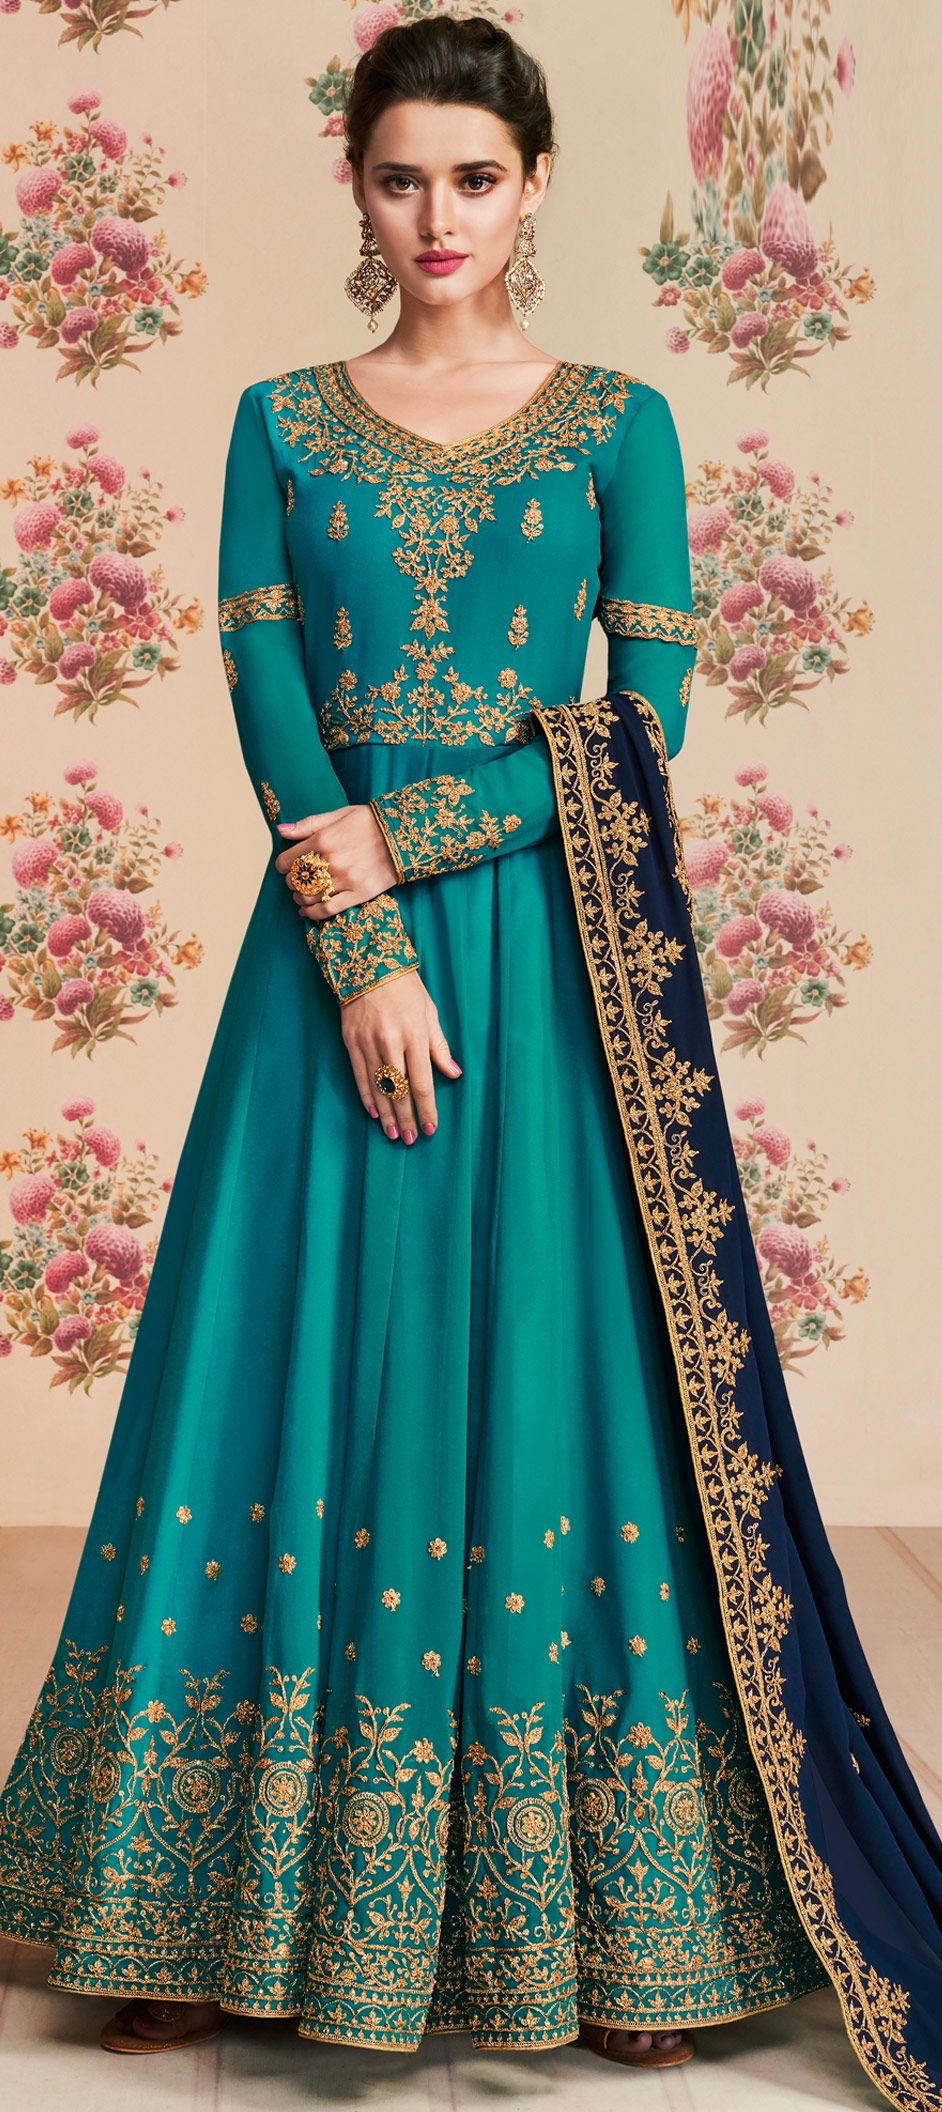 Georgette Bollywood Salwar Kameez in Blue with Stone work